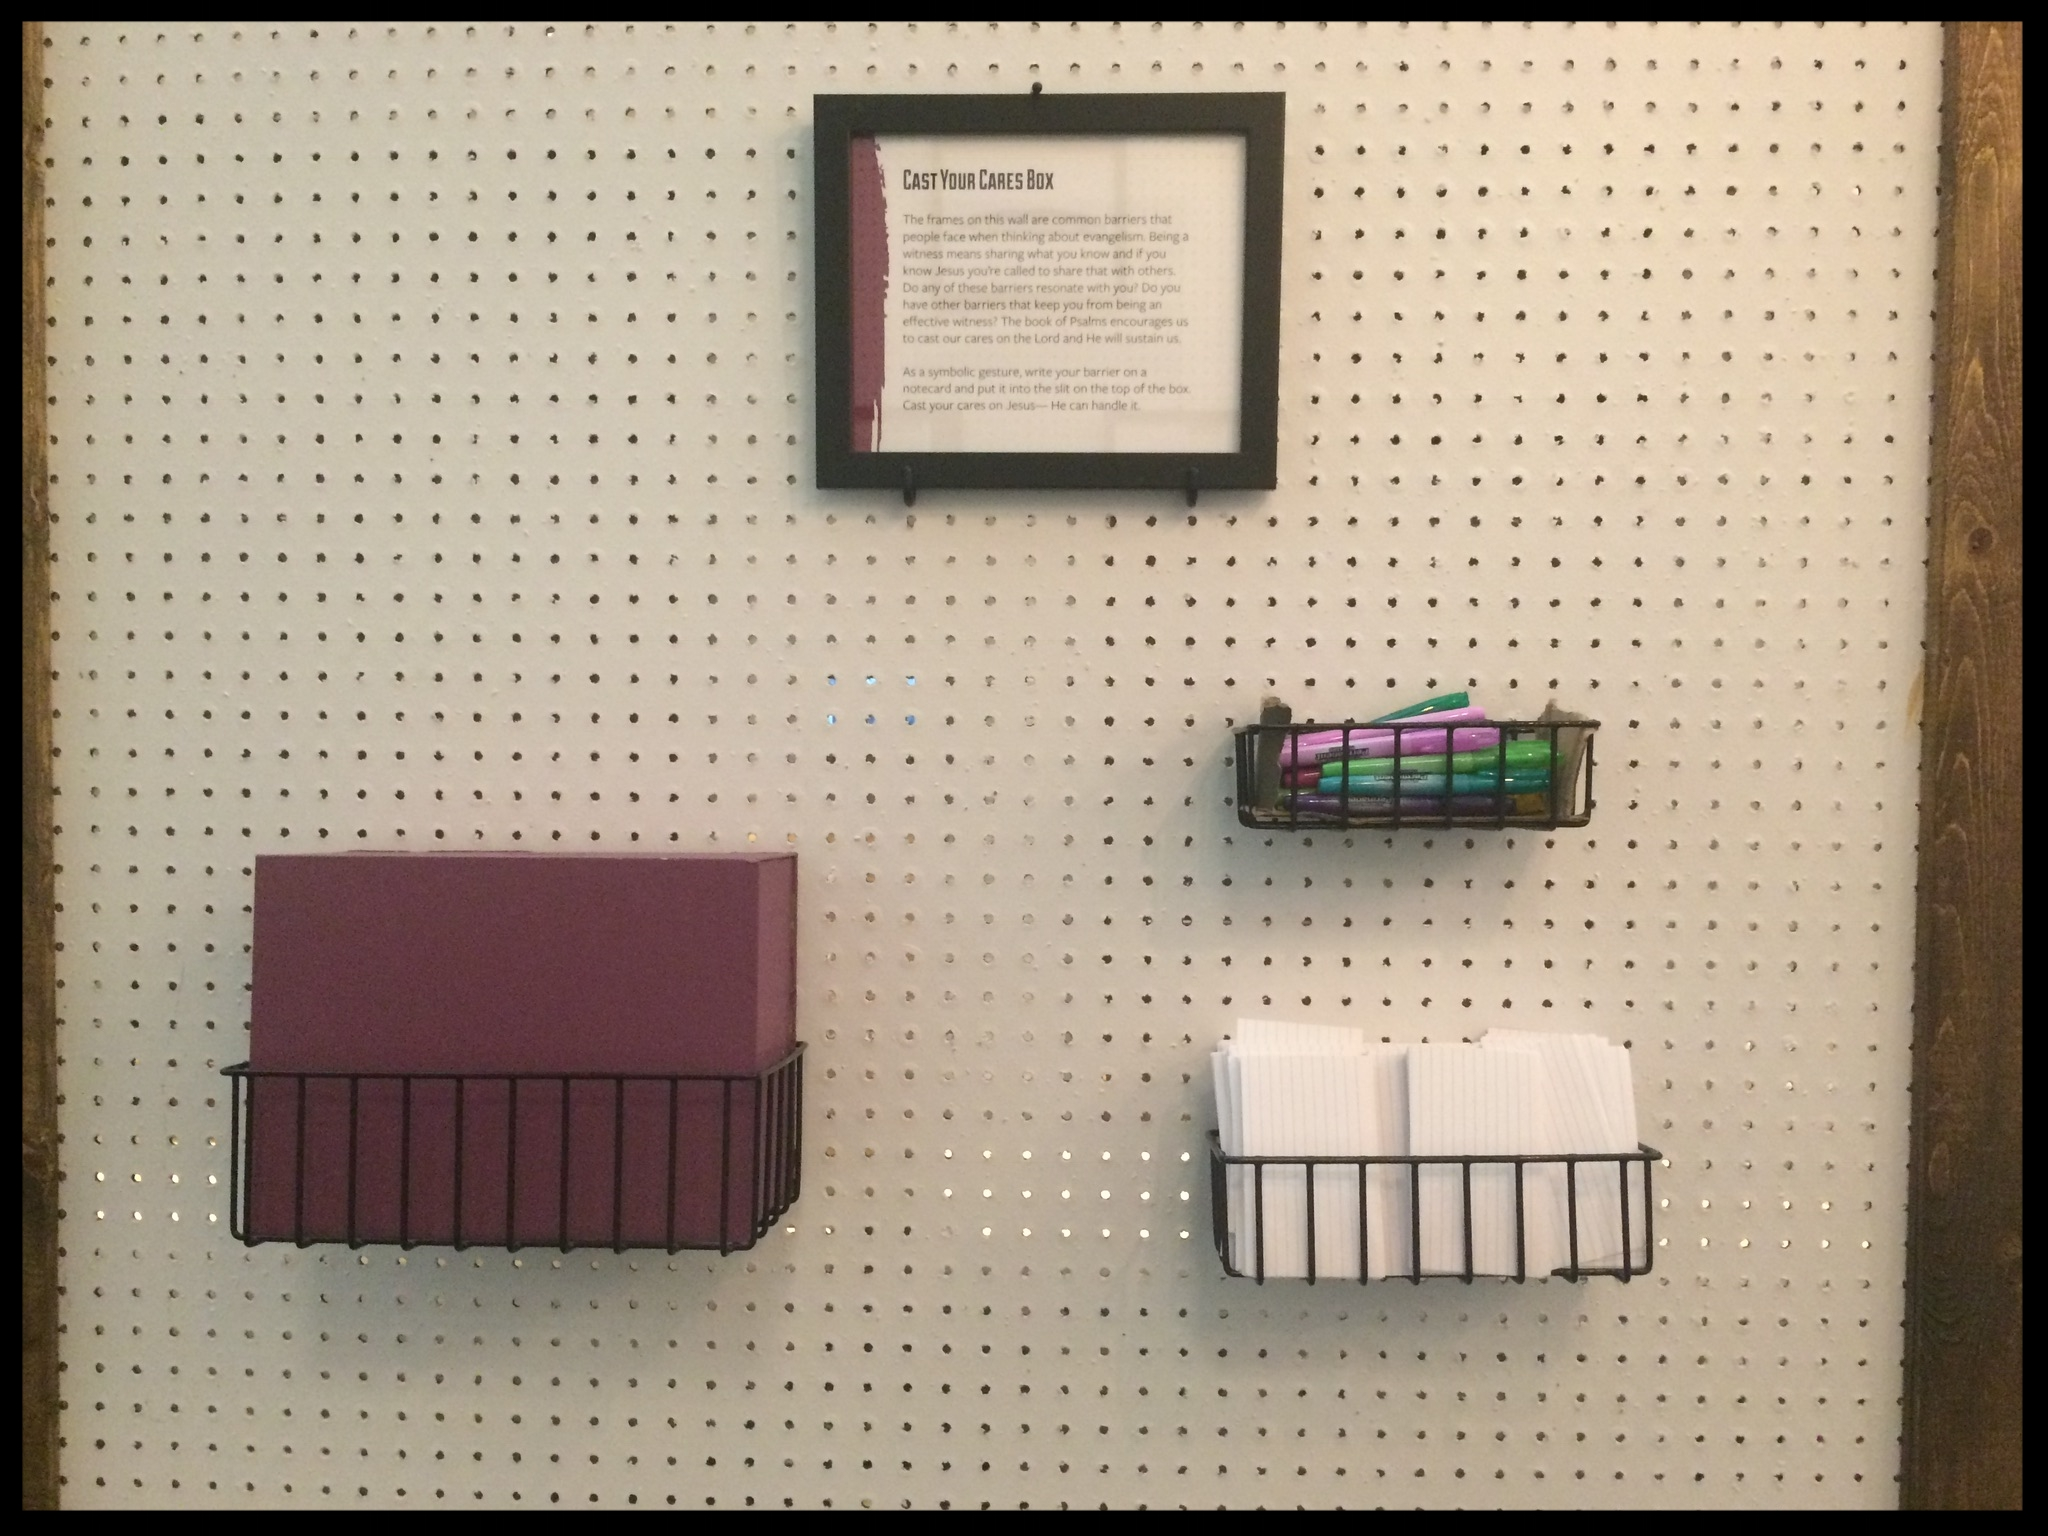 Cast Your Cares Box: the interactive portion of my Barriers wall.